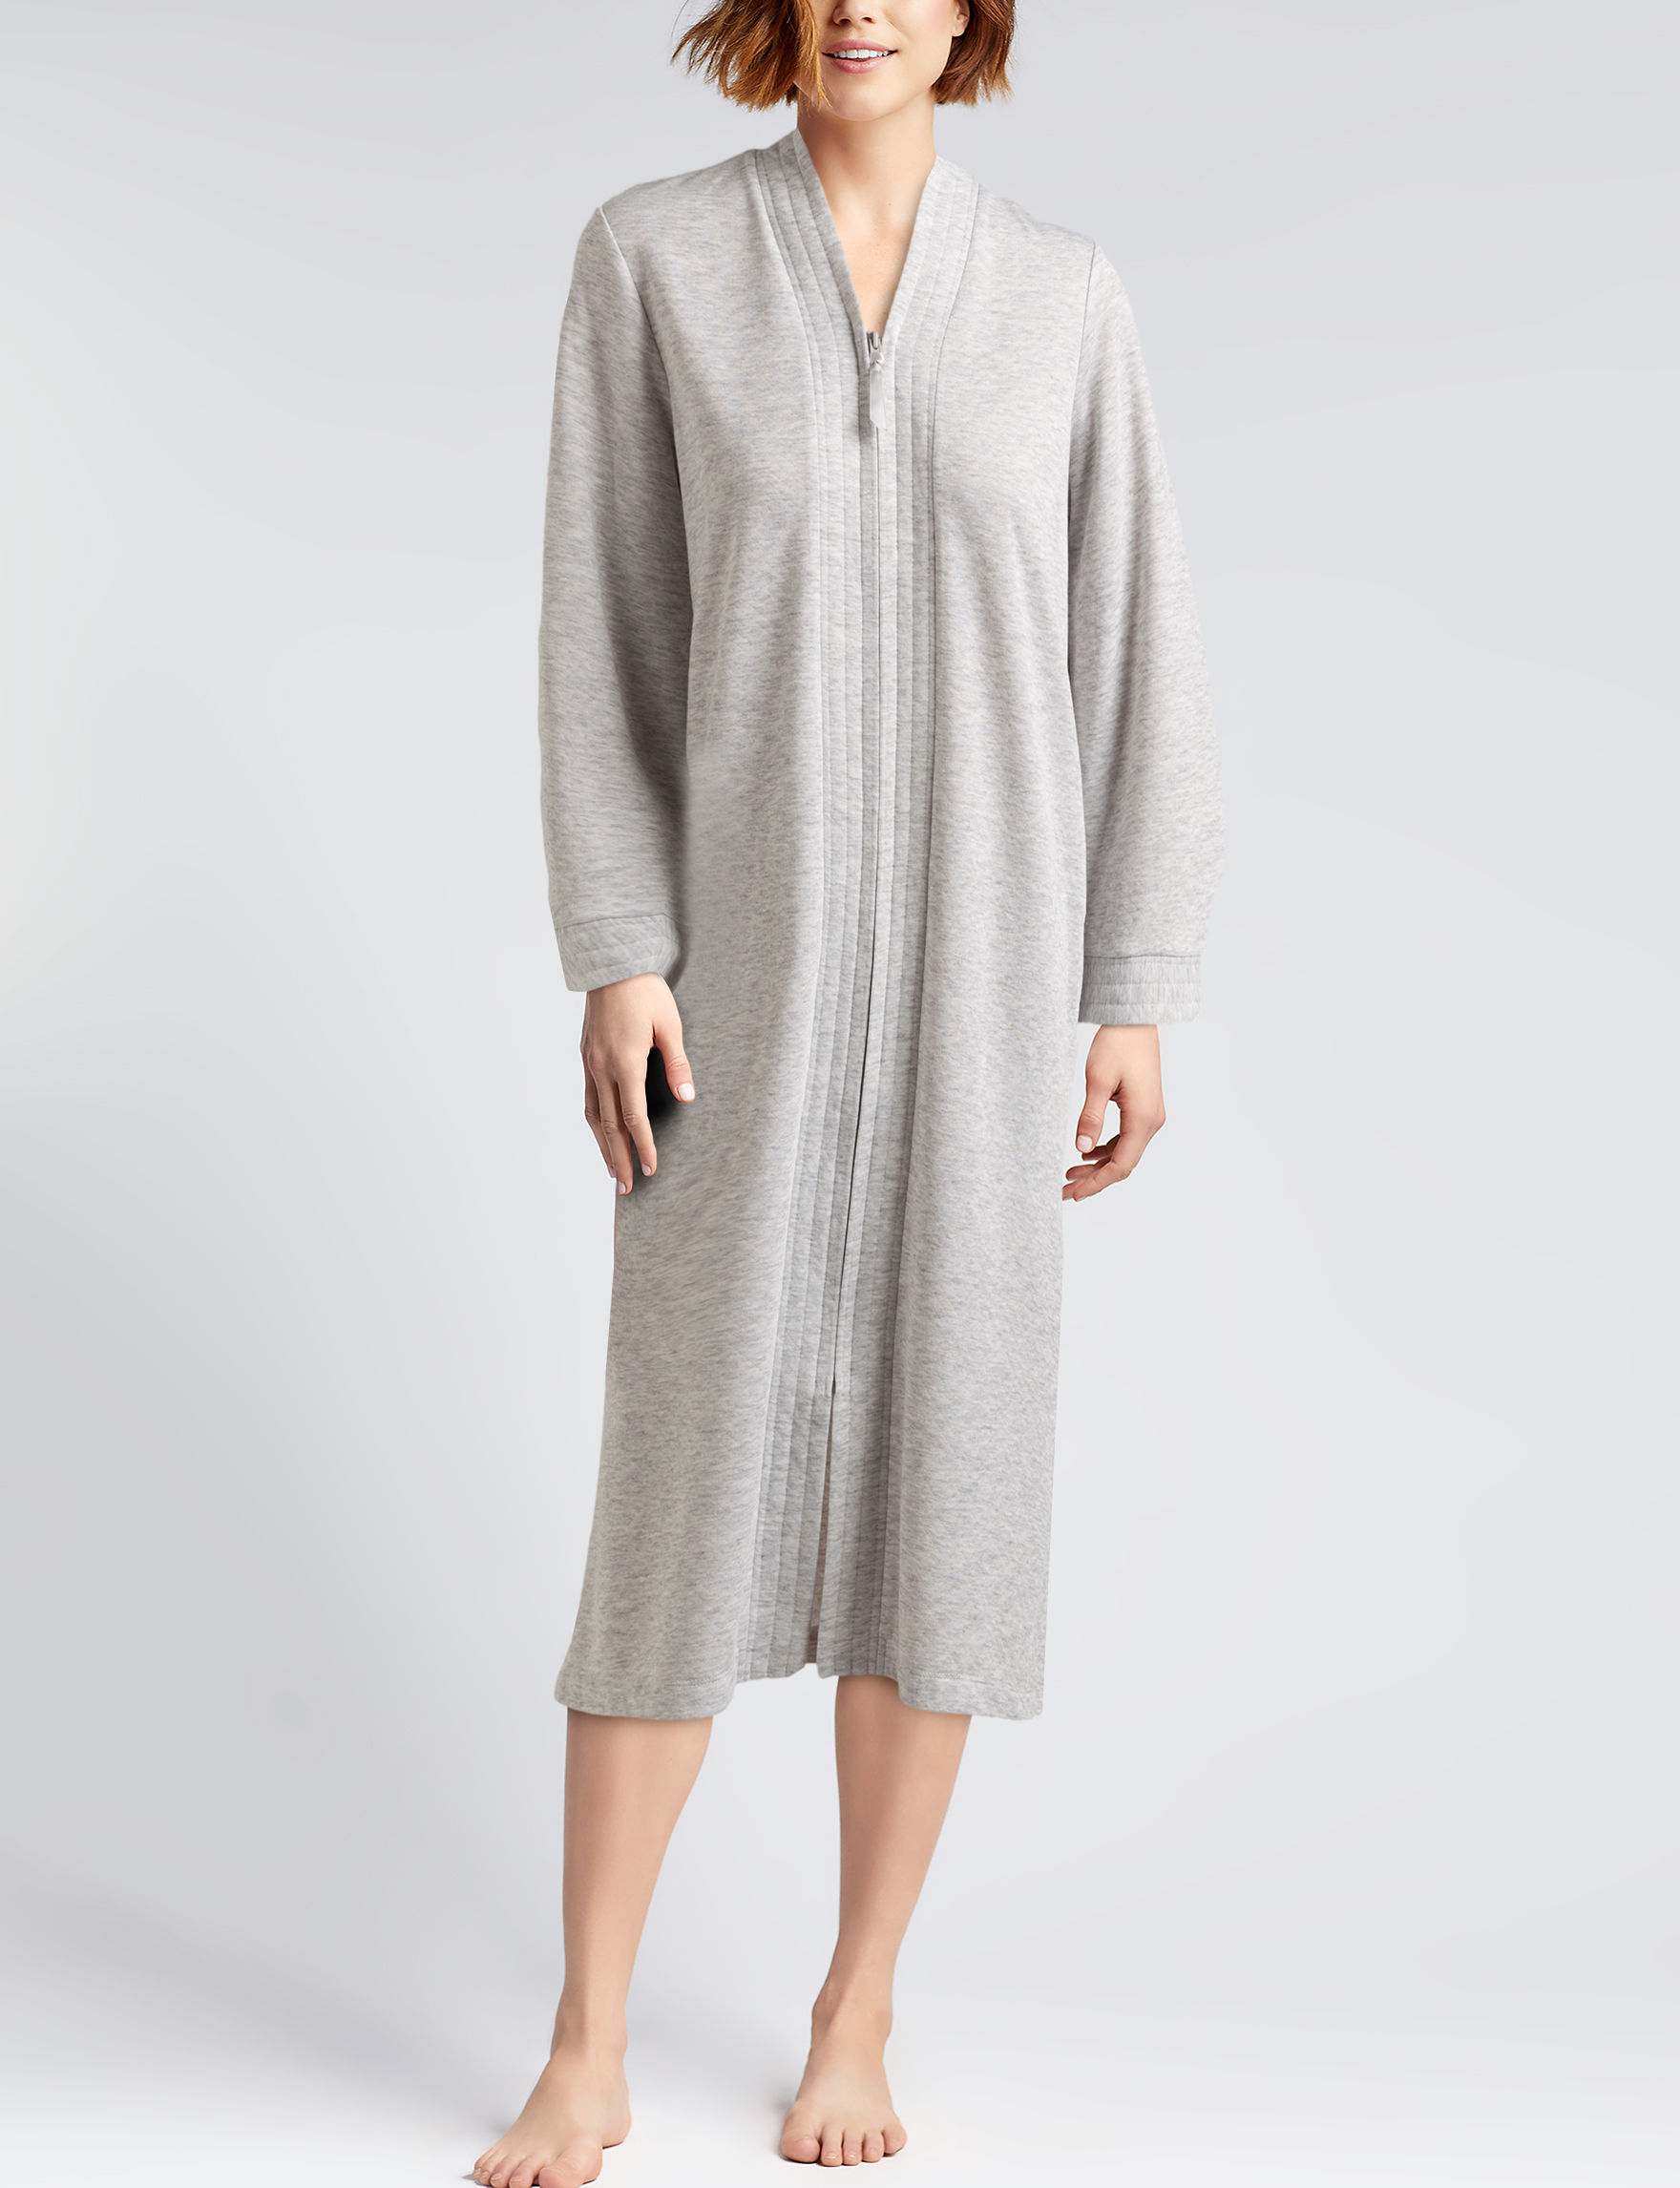 Lissome Grey Robes, Wraps & Dusters